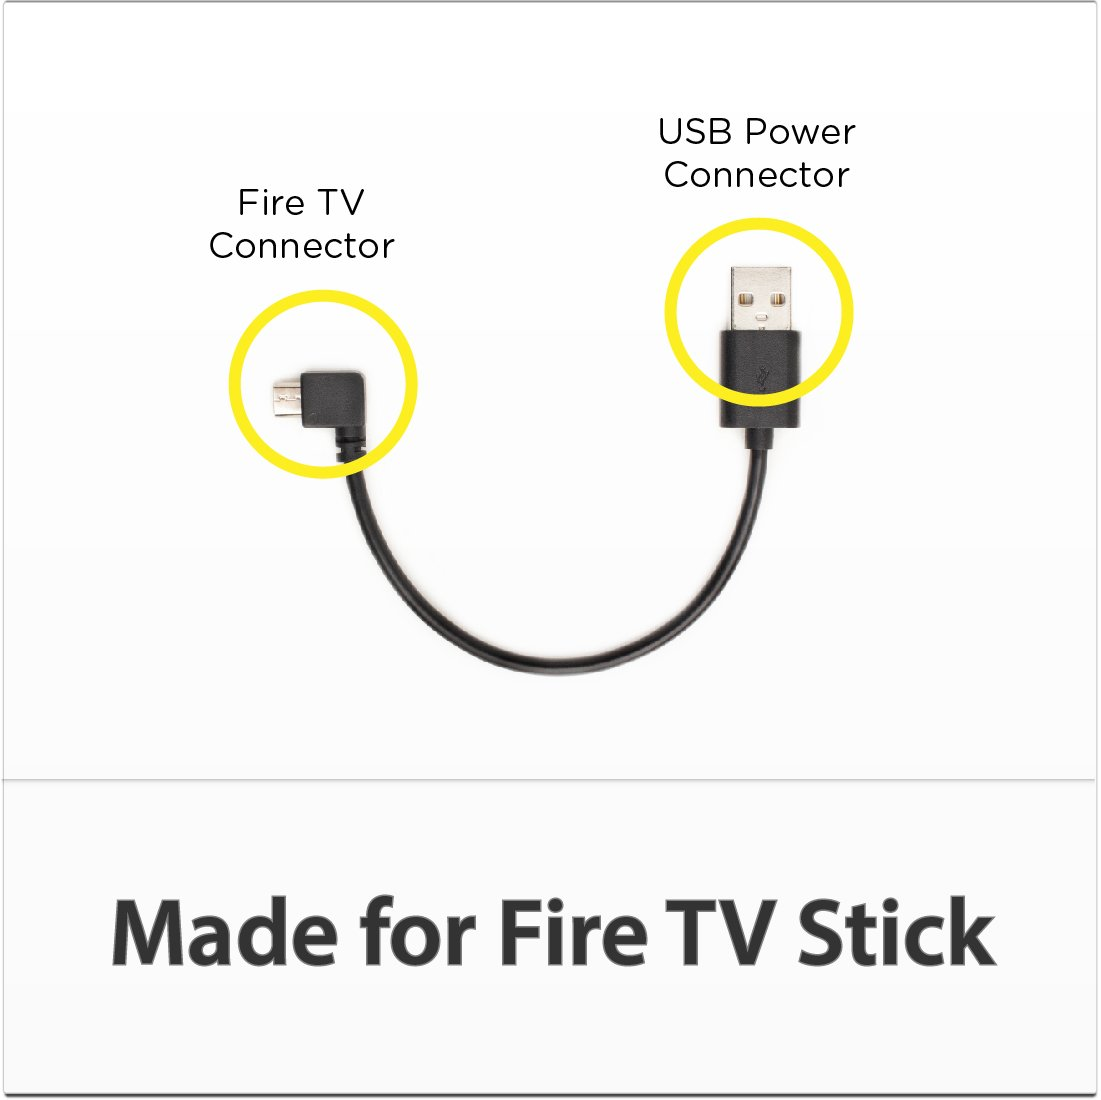 Amazon mini usb cable for powering fire tv stick not amazon mini usb cable for powering fire tv stick not compatible with new fire tv stick amazon devices pooptronica